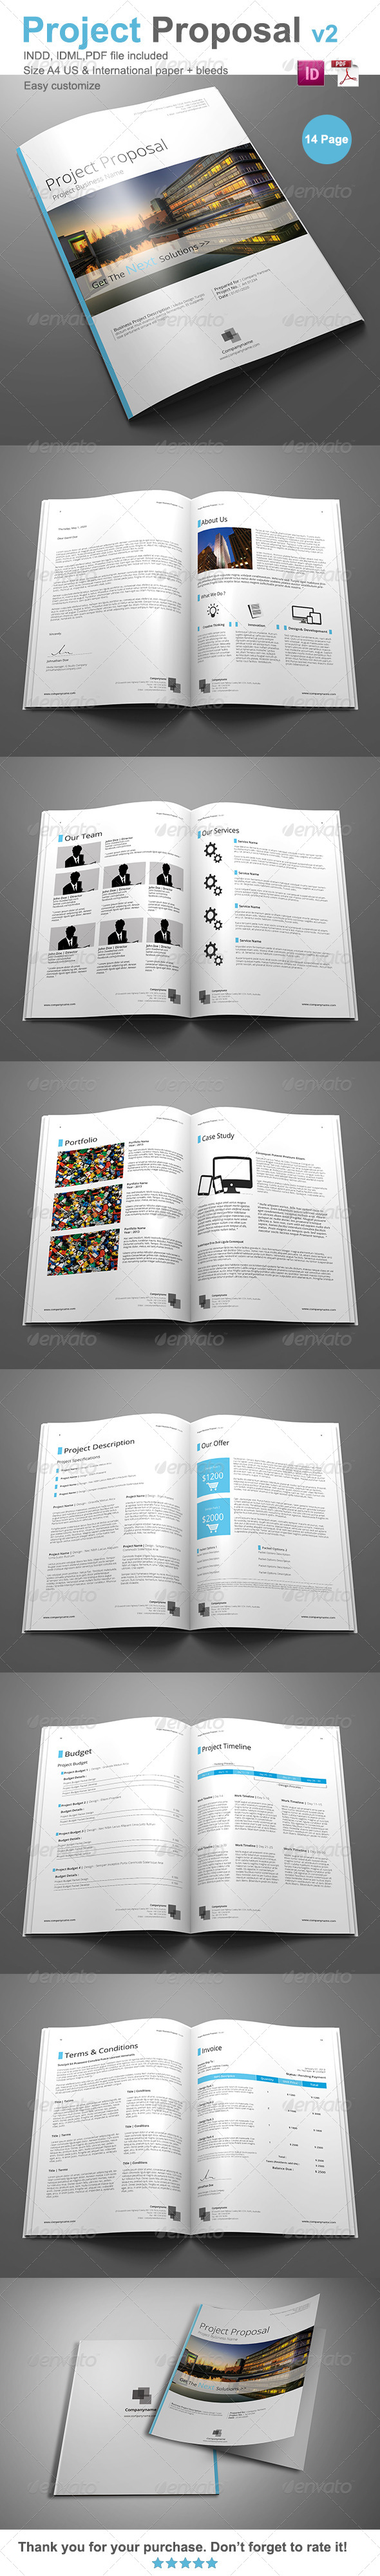 GraphicRiver Gstudio Project Proposal Template V2 4081861